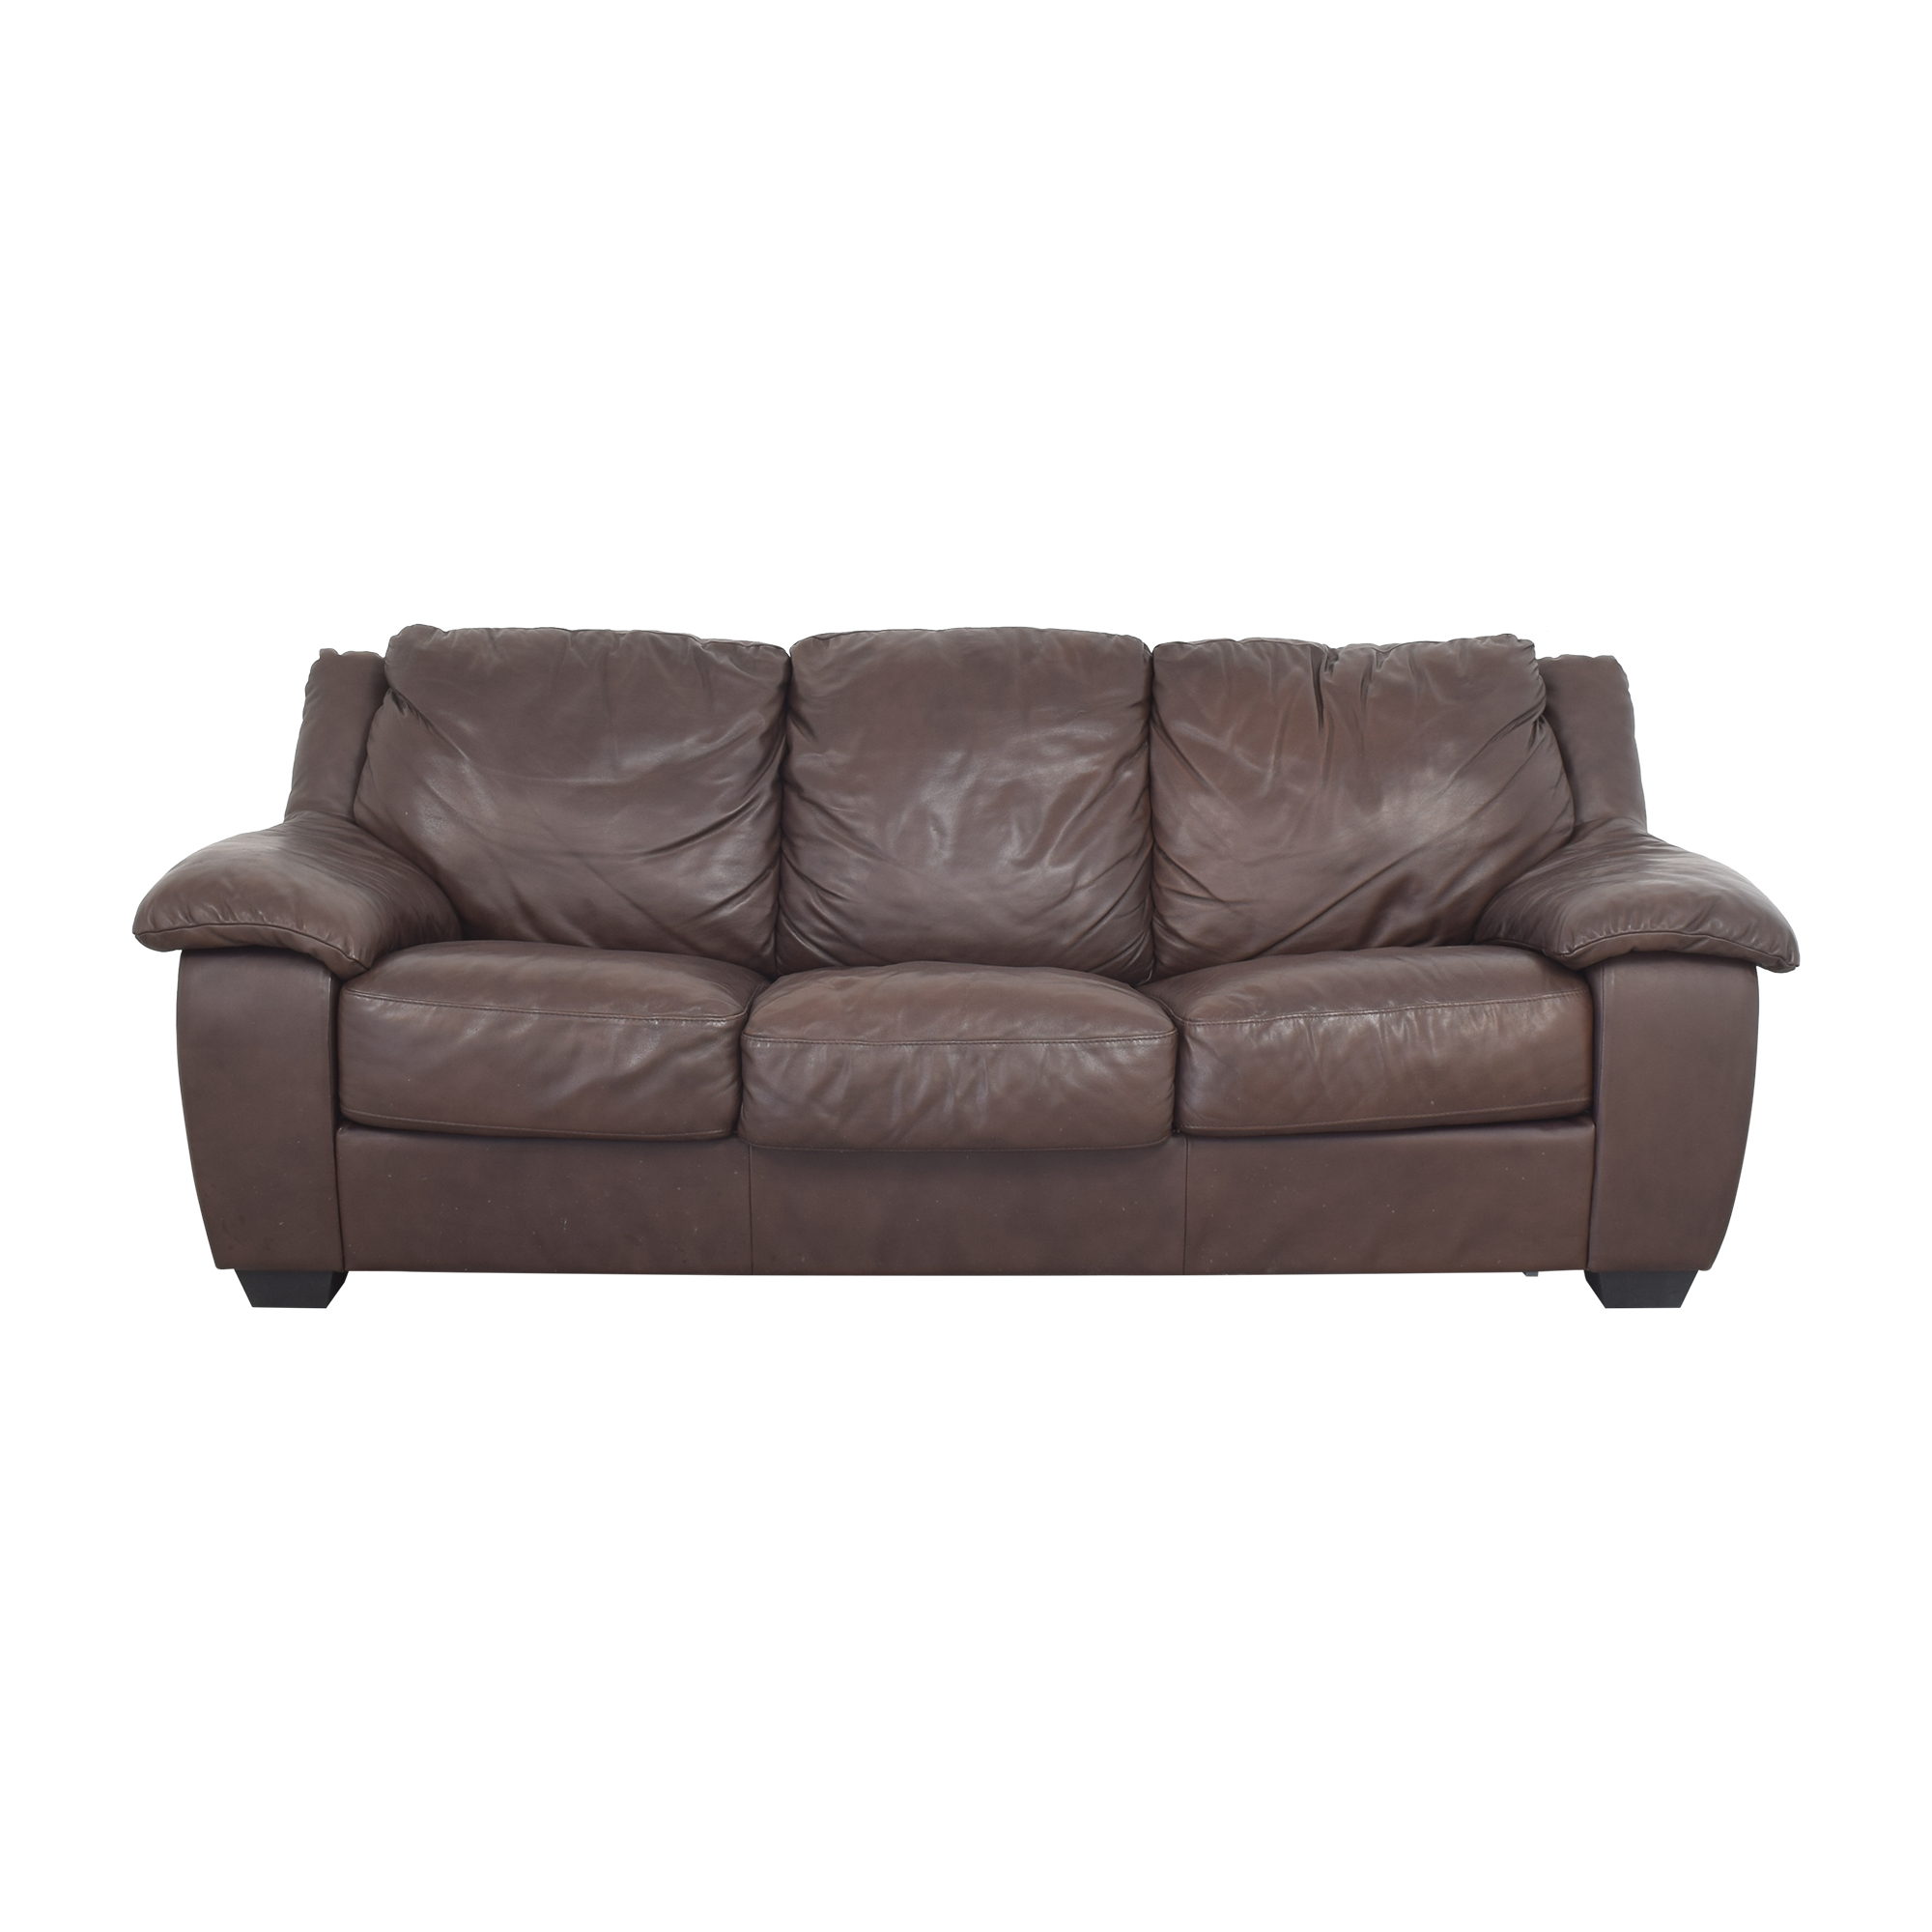 shop Macy's Macy's Lothan Queen Sleeper Sofa online